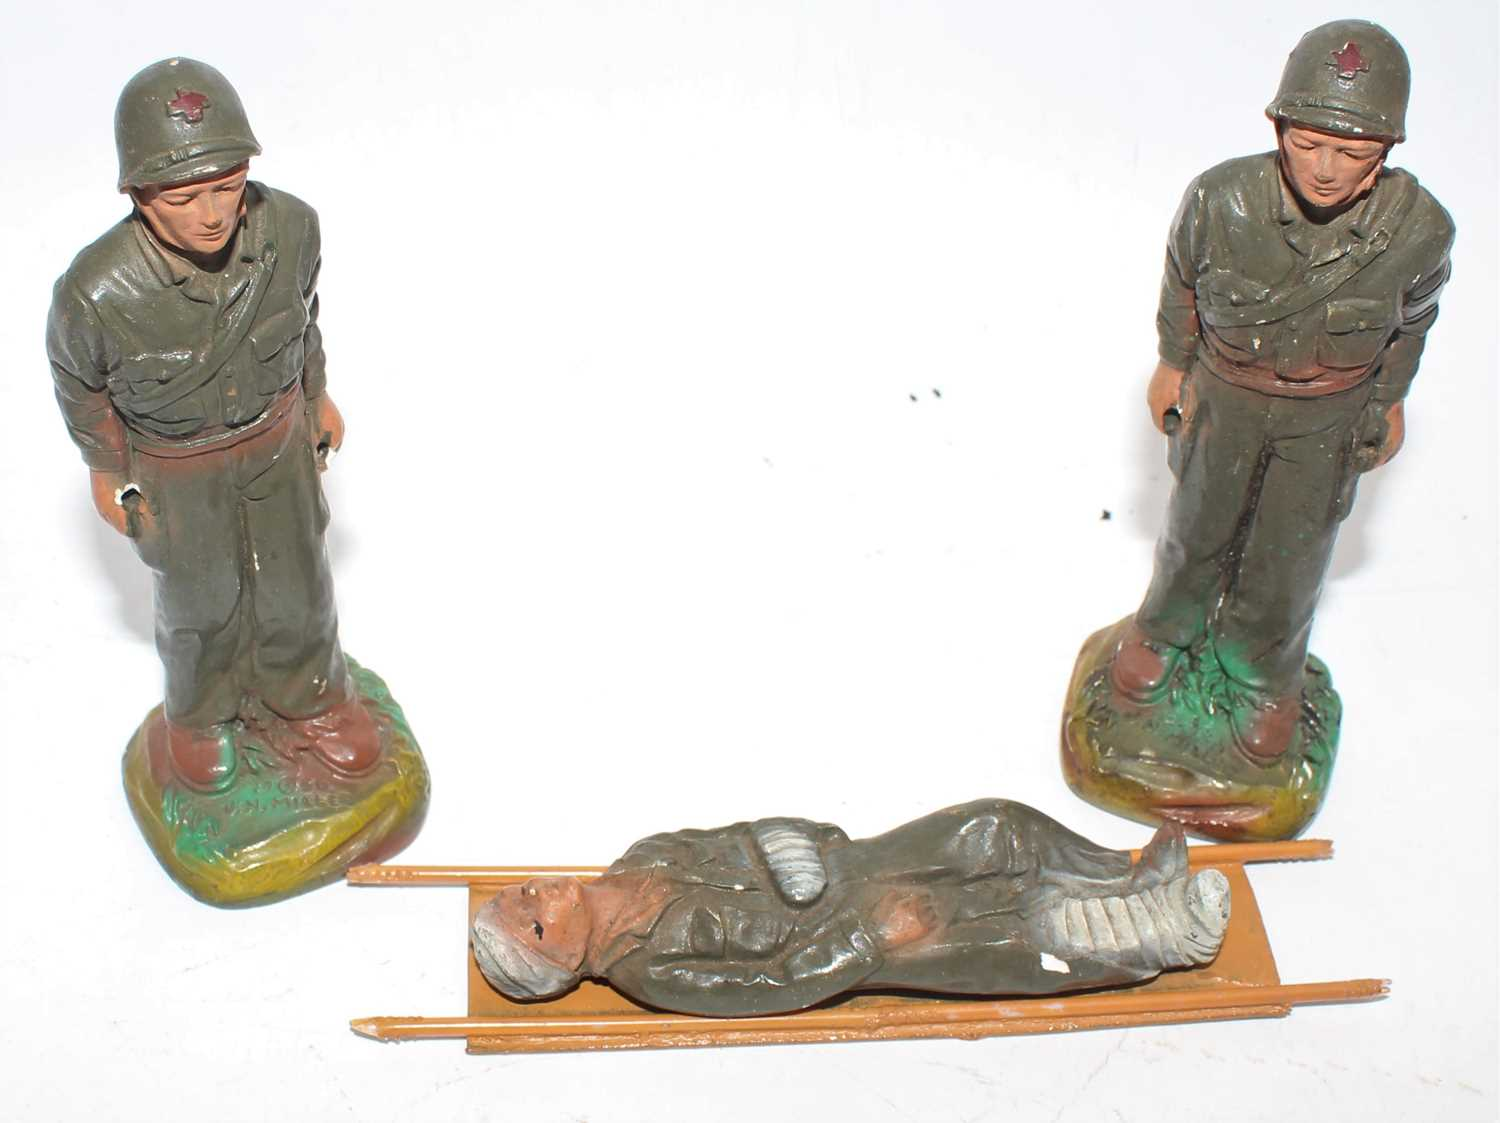 JH Miller 1950 hand-painted pottery US Army, Korean War, stretcher-bearers comprising of a